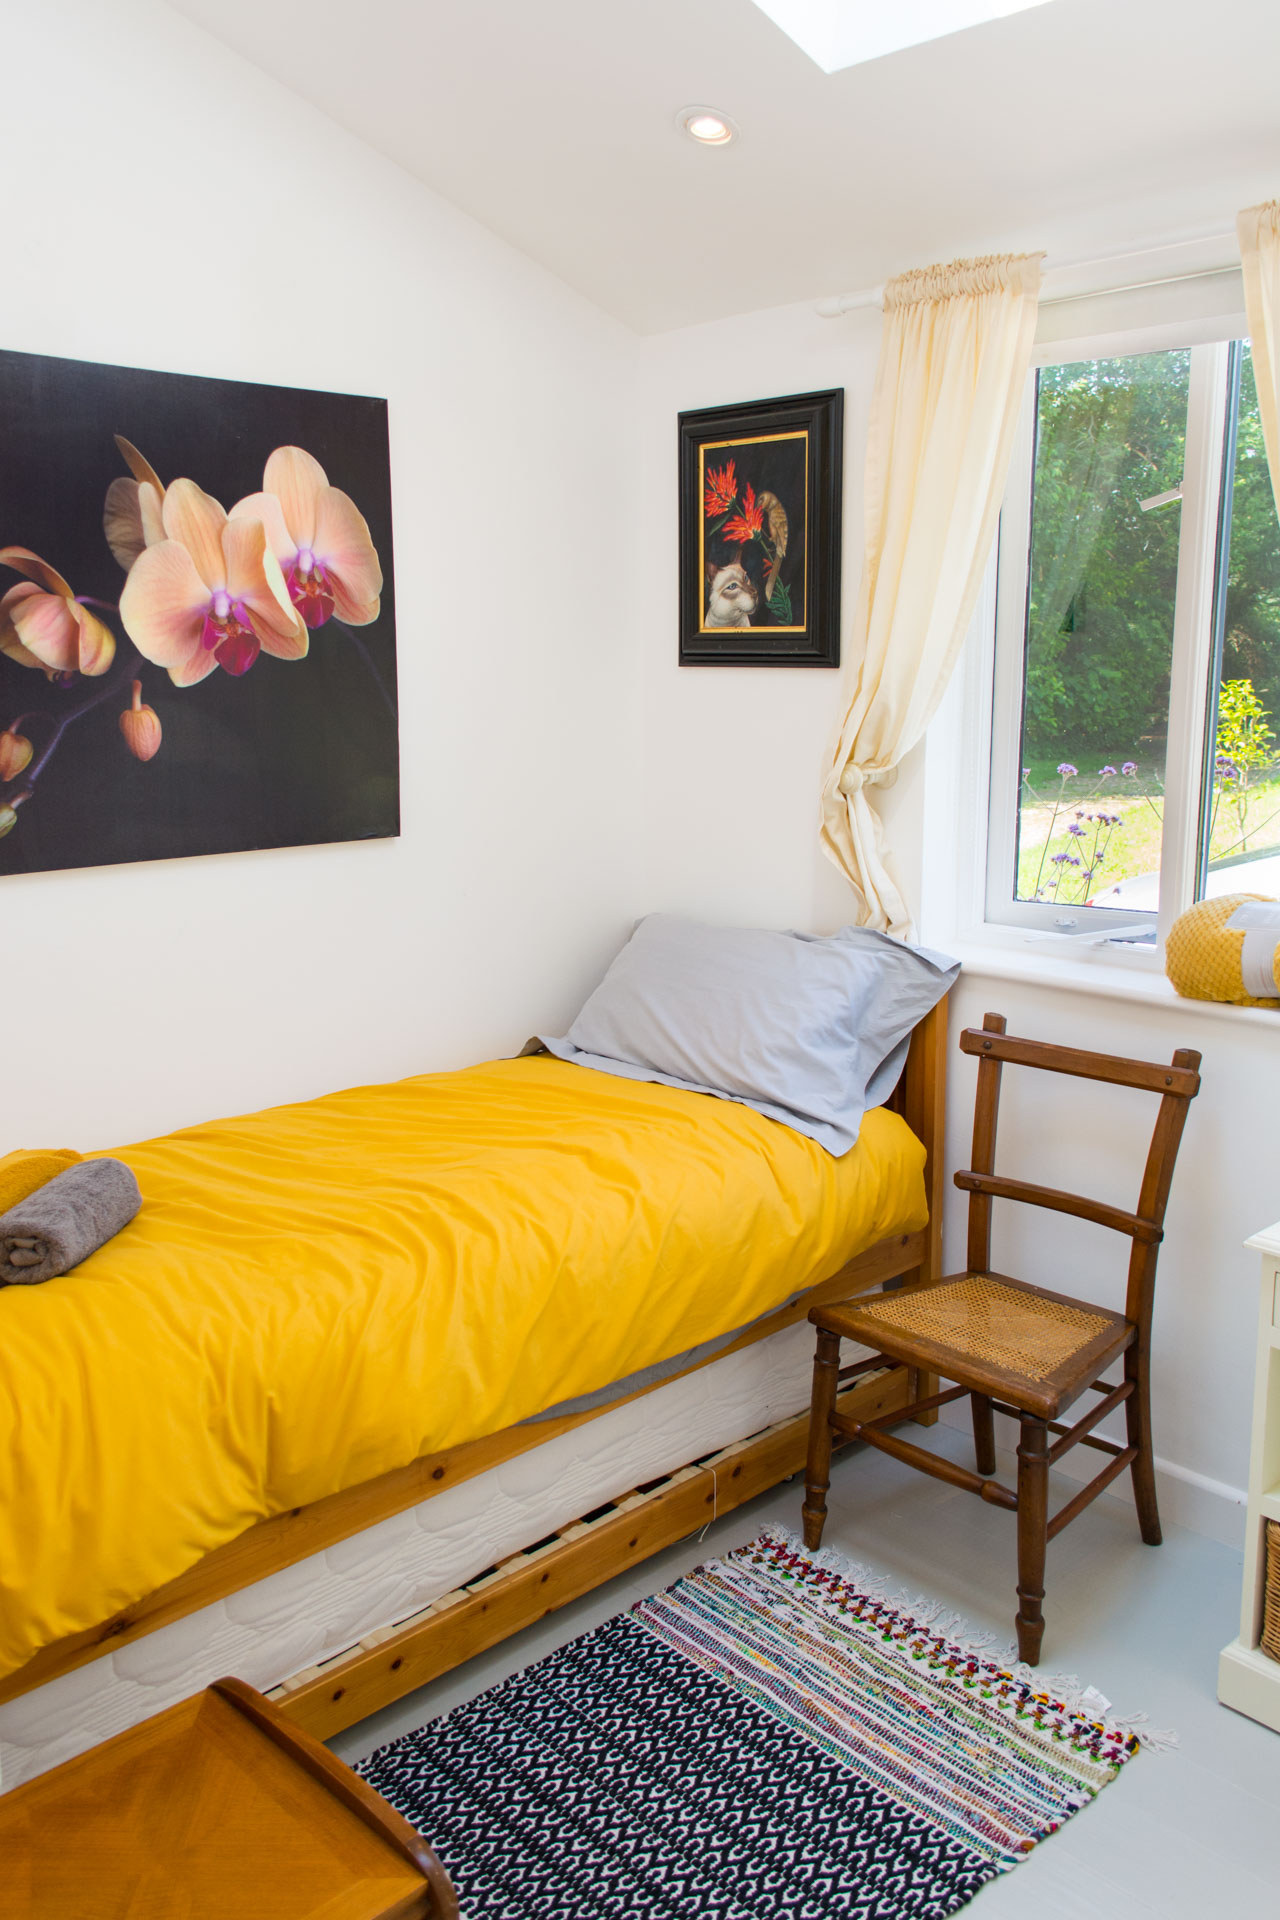 Single bedroom showing a bed with a yellow duvet and grey pillow.